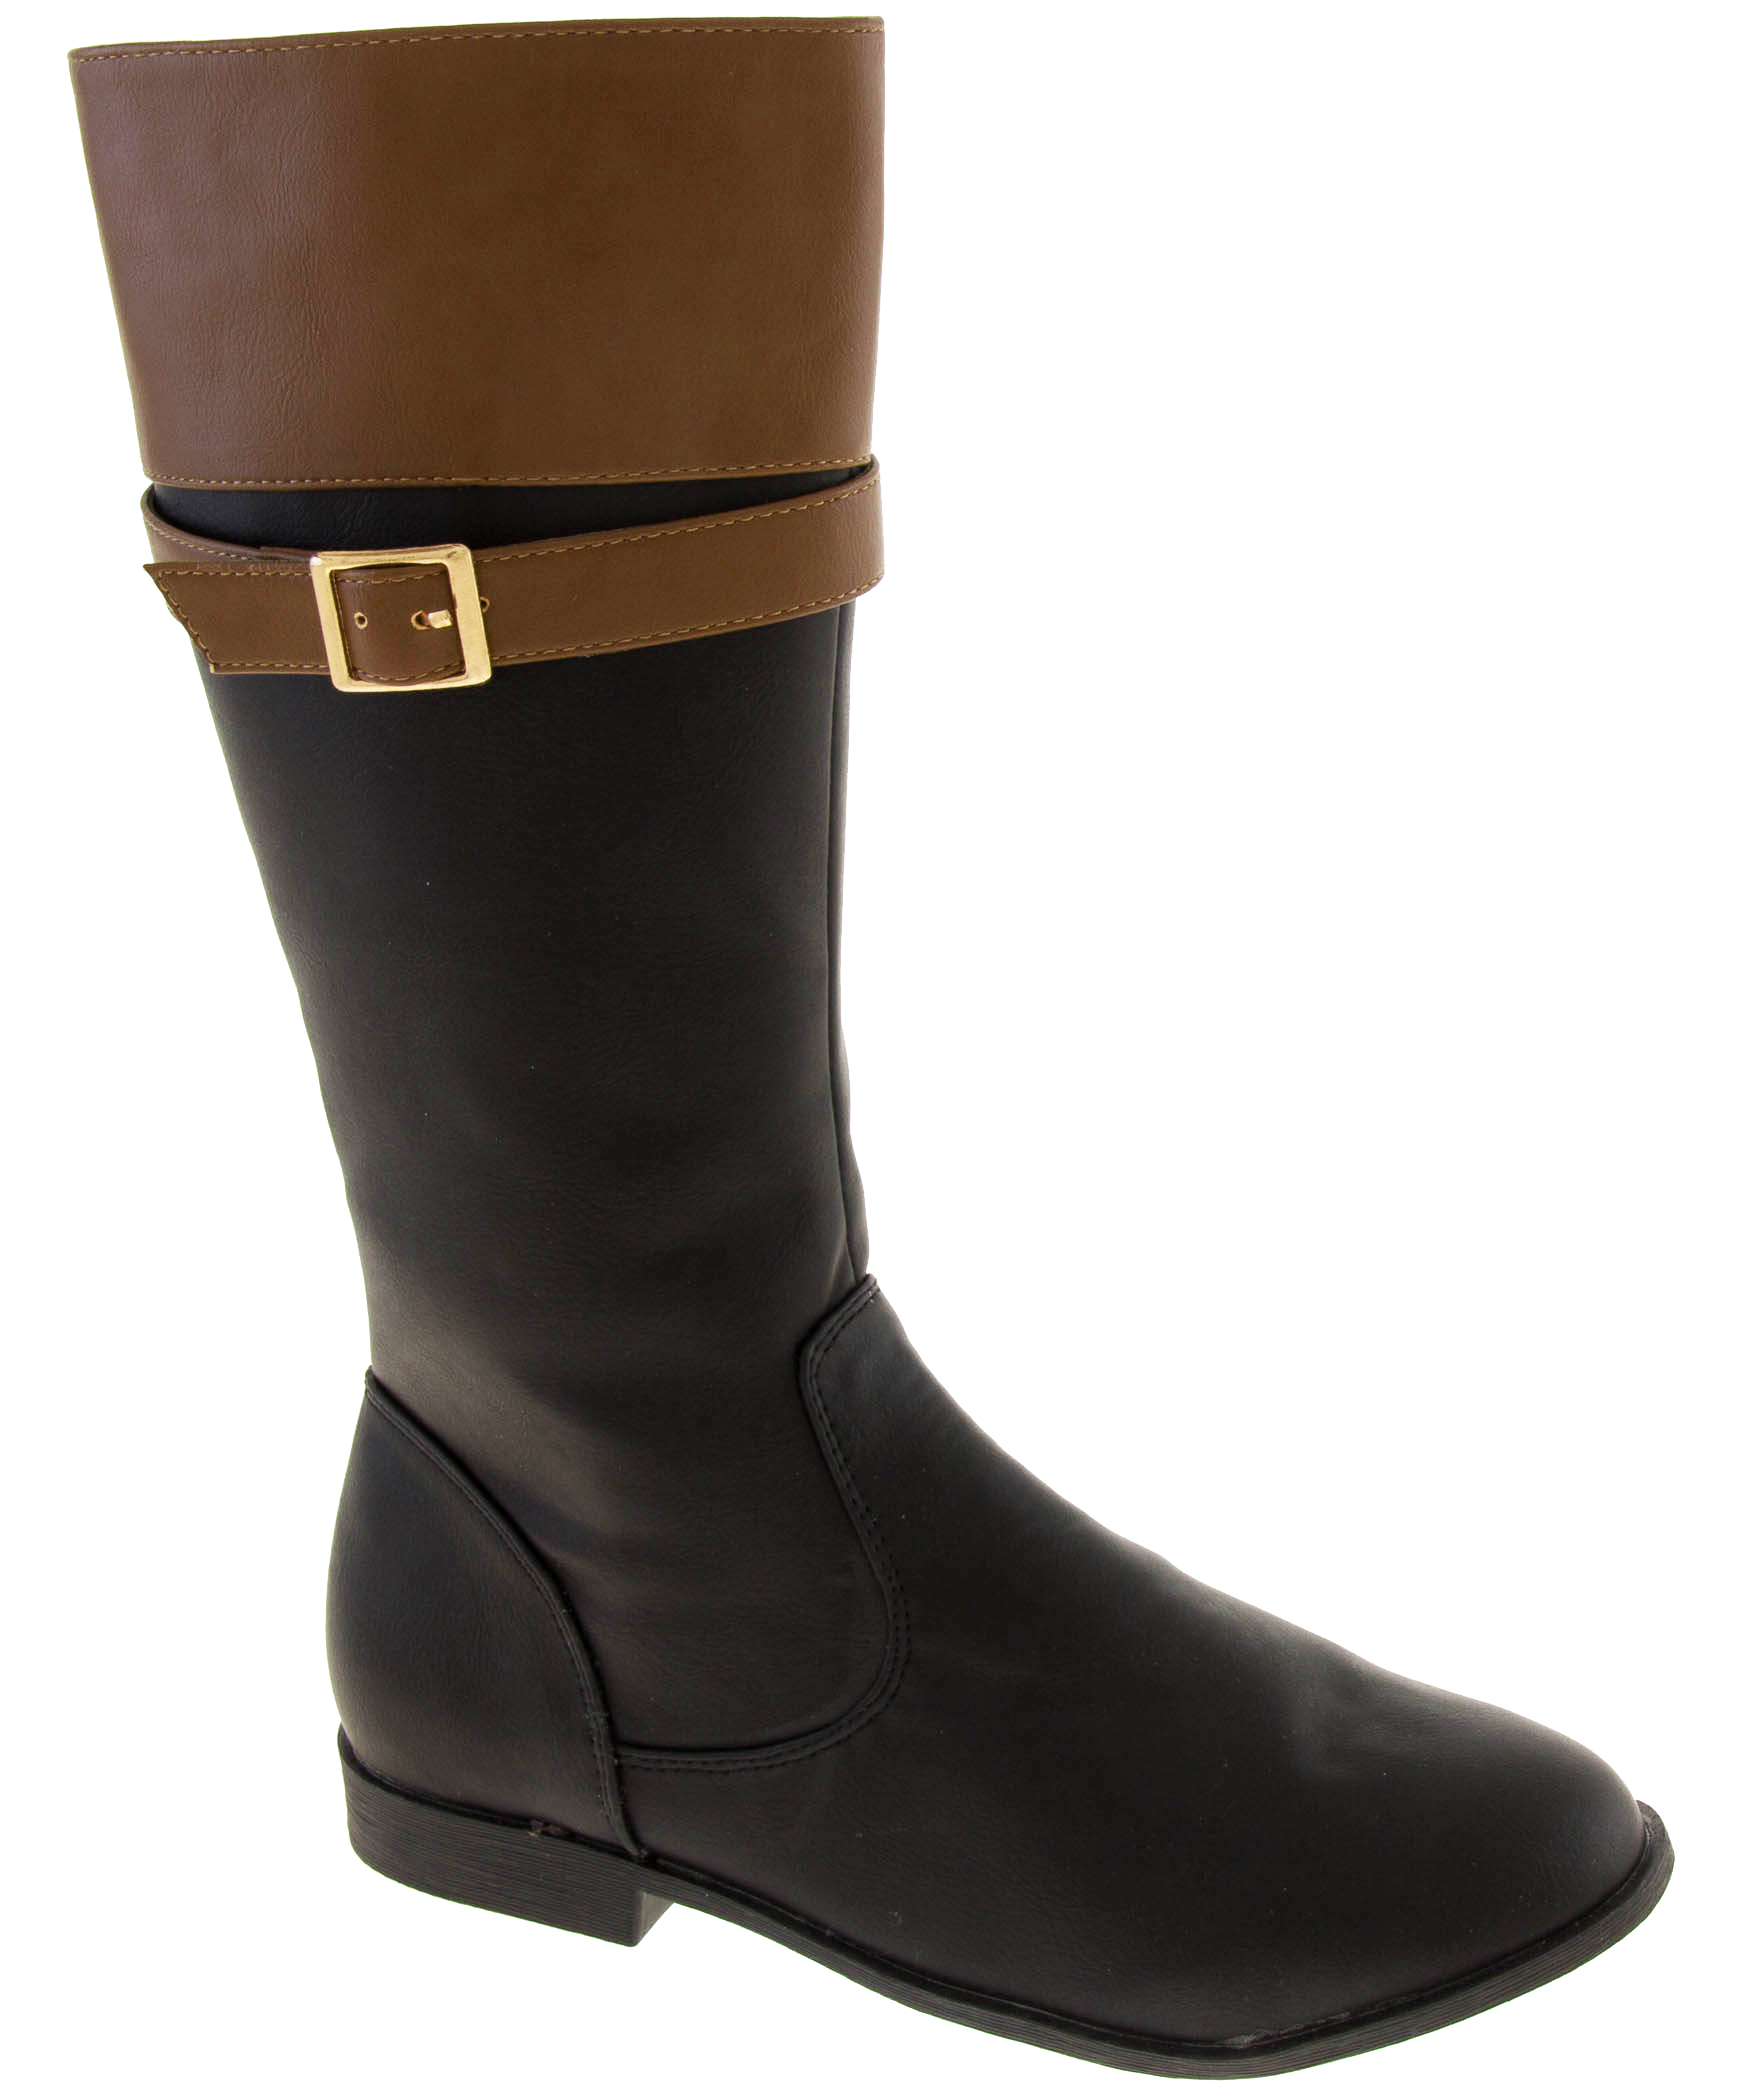 boots lovely quality formal school